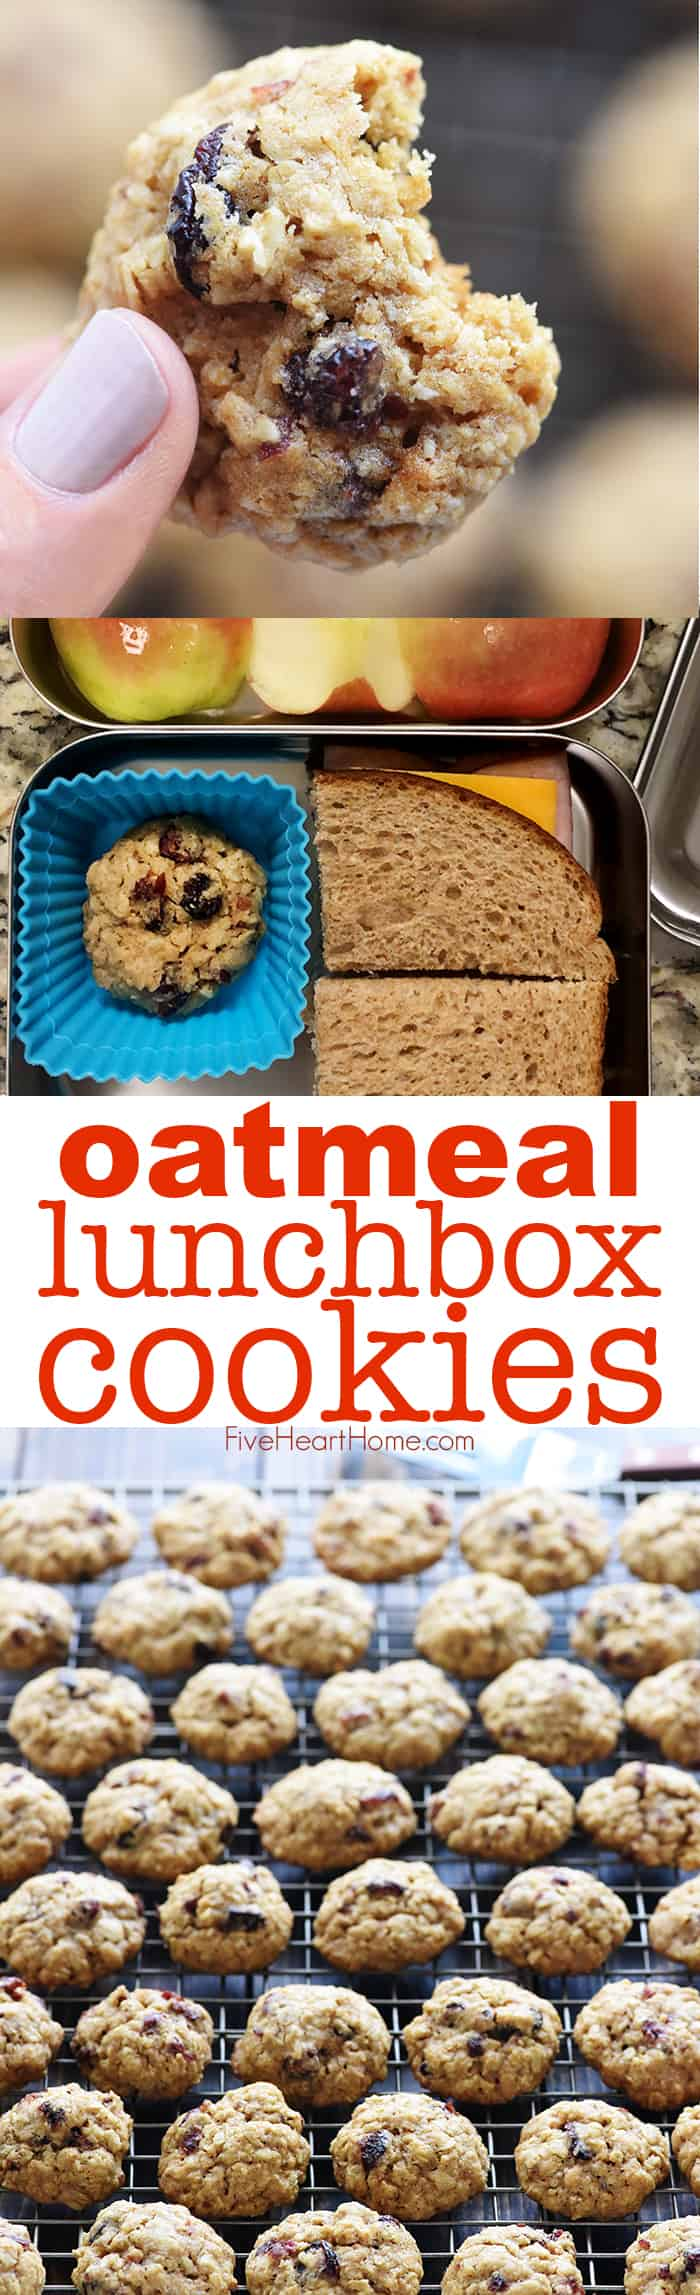 Oatmeal Lunchbox Cookies ~ small, wholesome treats perfect for tucking into a lunchbox to brighten your favorite child's day! | FiveHeartHome.com via @fivehearthome